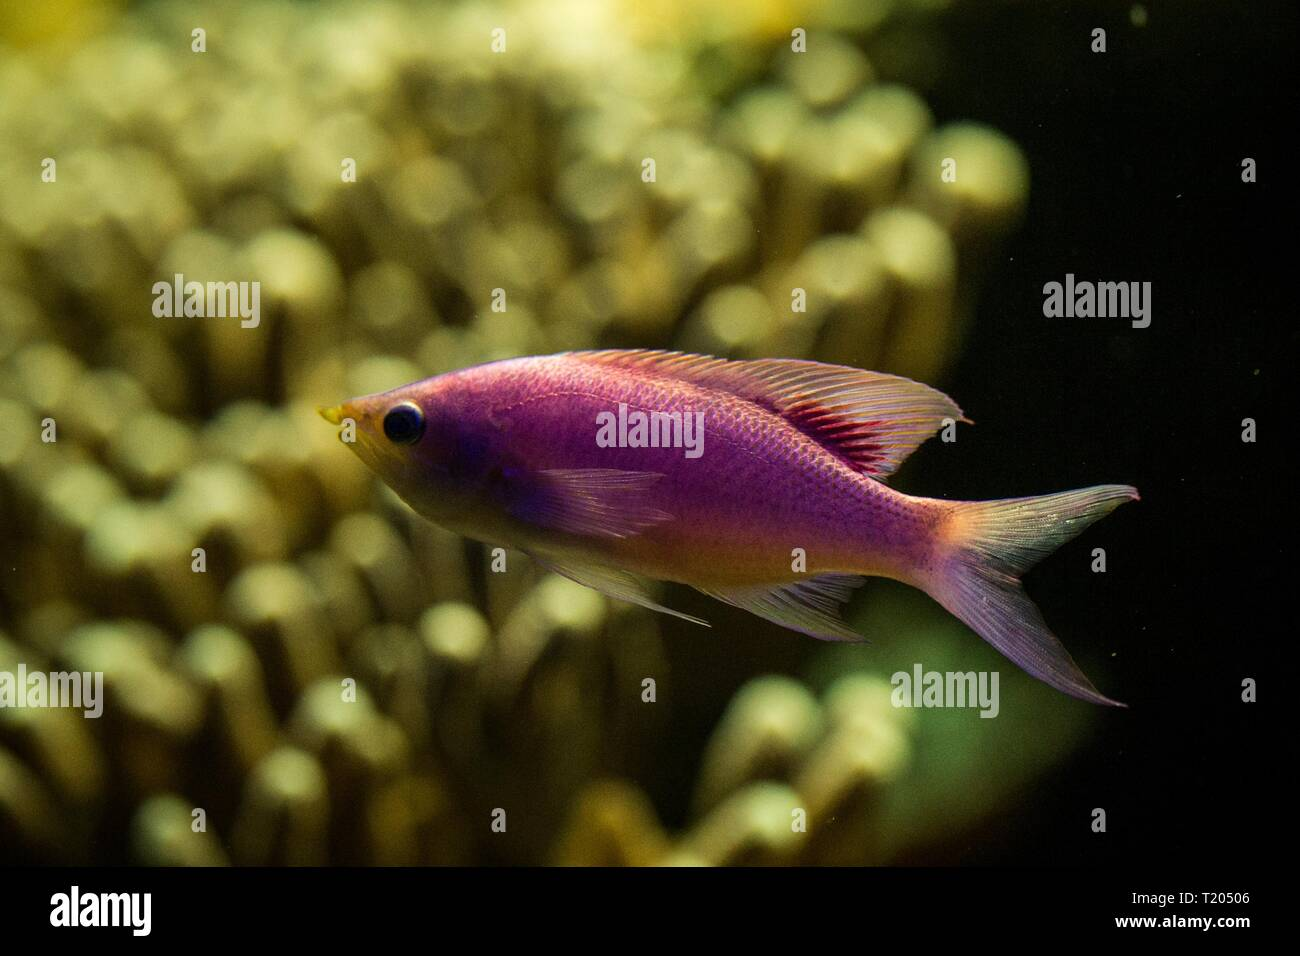 Purple Queen Anthias, Pseudanthias tuka, coral reef fish, Salt water marine fish, beautiful pink and yellow fish with tropical corals in background, a Stock Photo